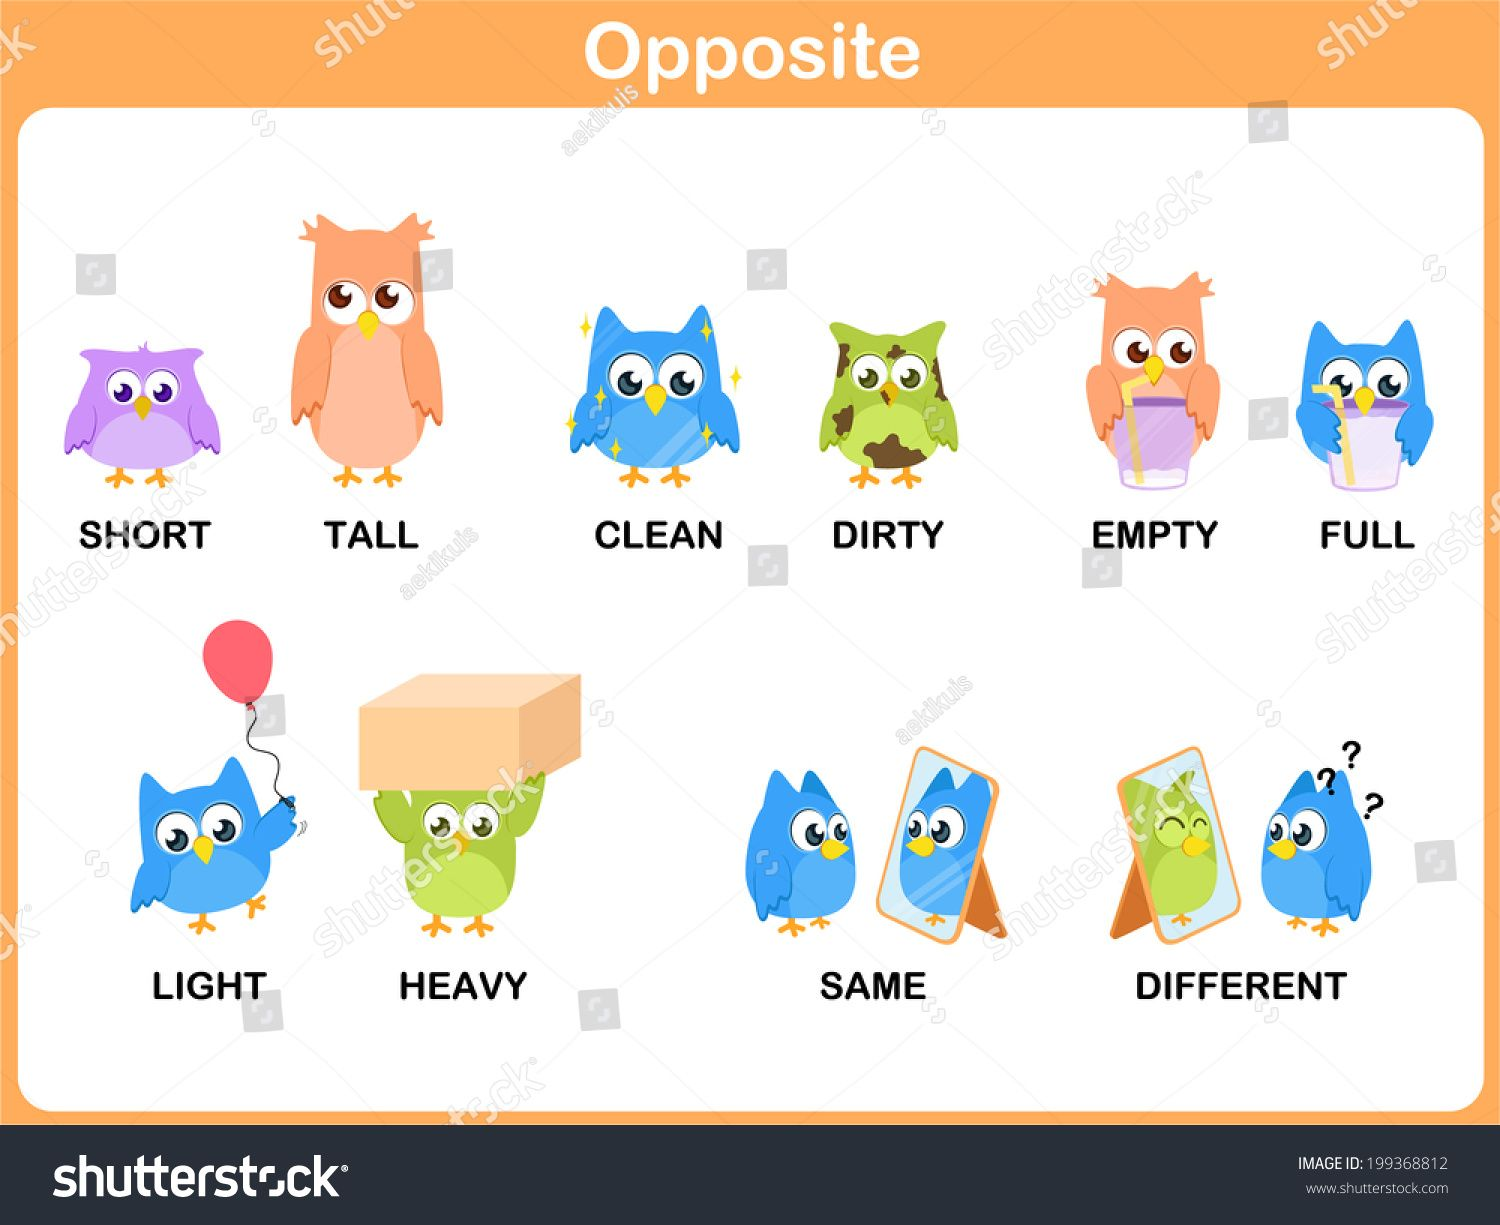 Opposite word for preschool (short, tall, clean, dirty